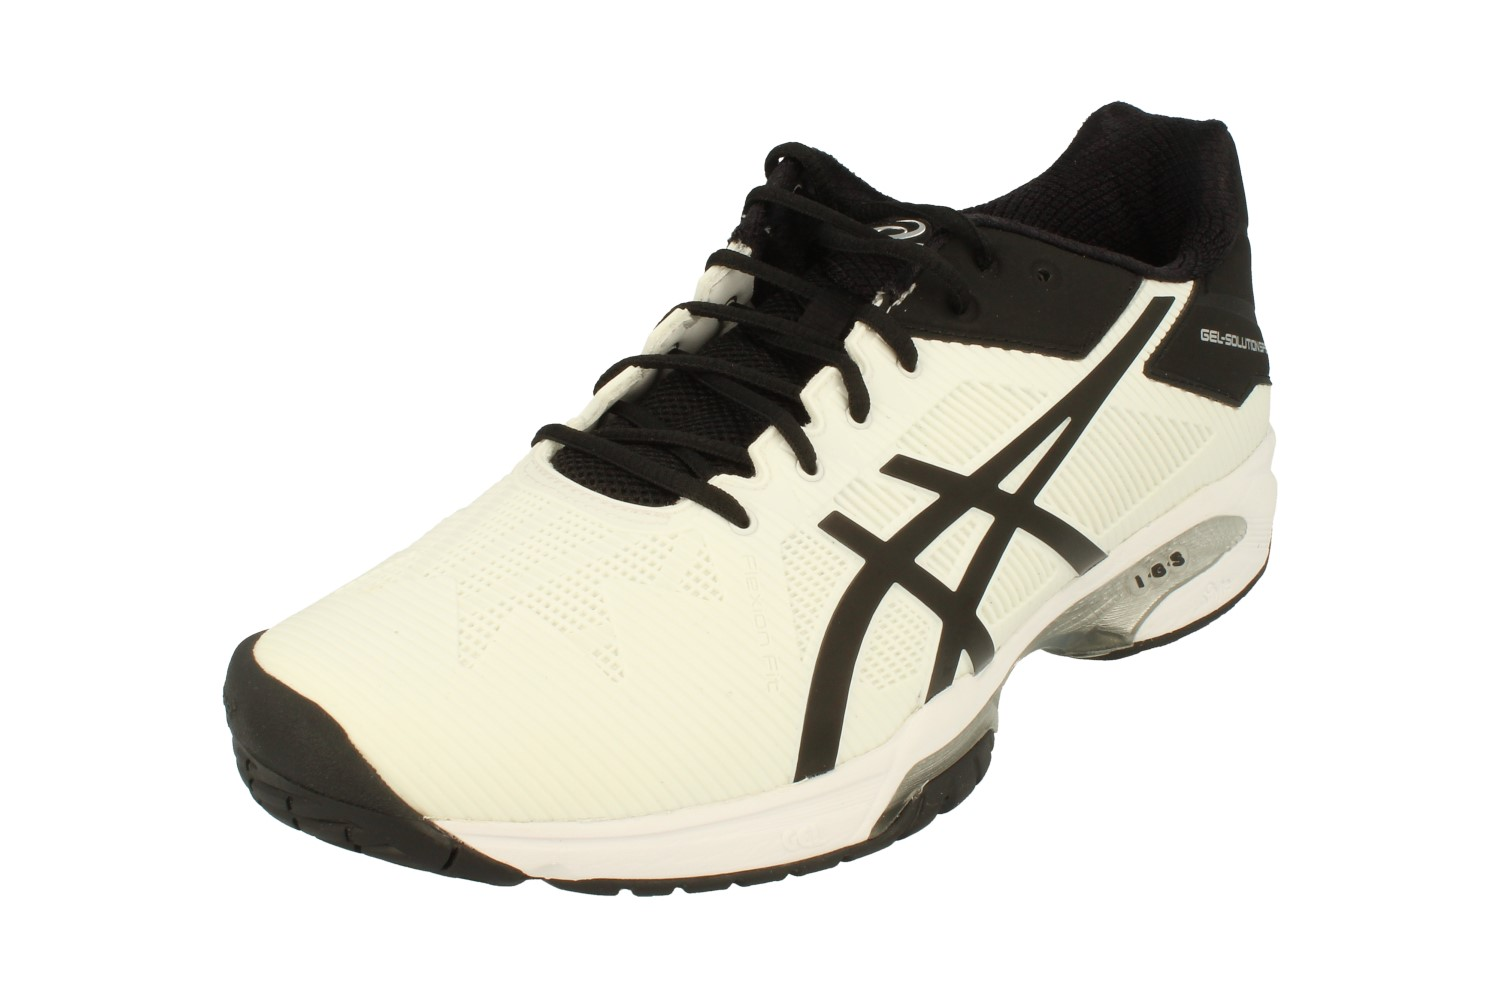 Asics Gel-Solution Speed 3 Mens Tennis Shoes E600N Sneakers Trainers 0190